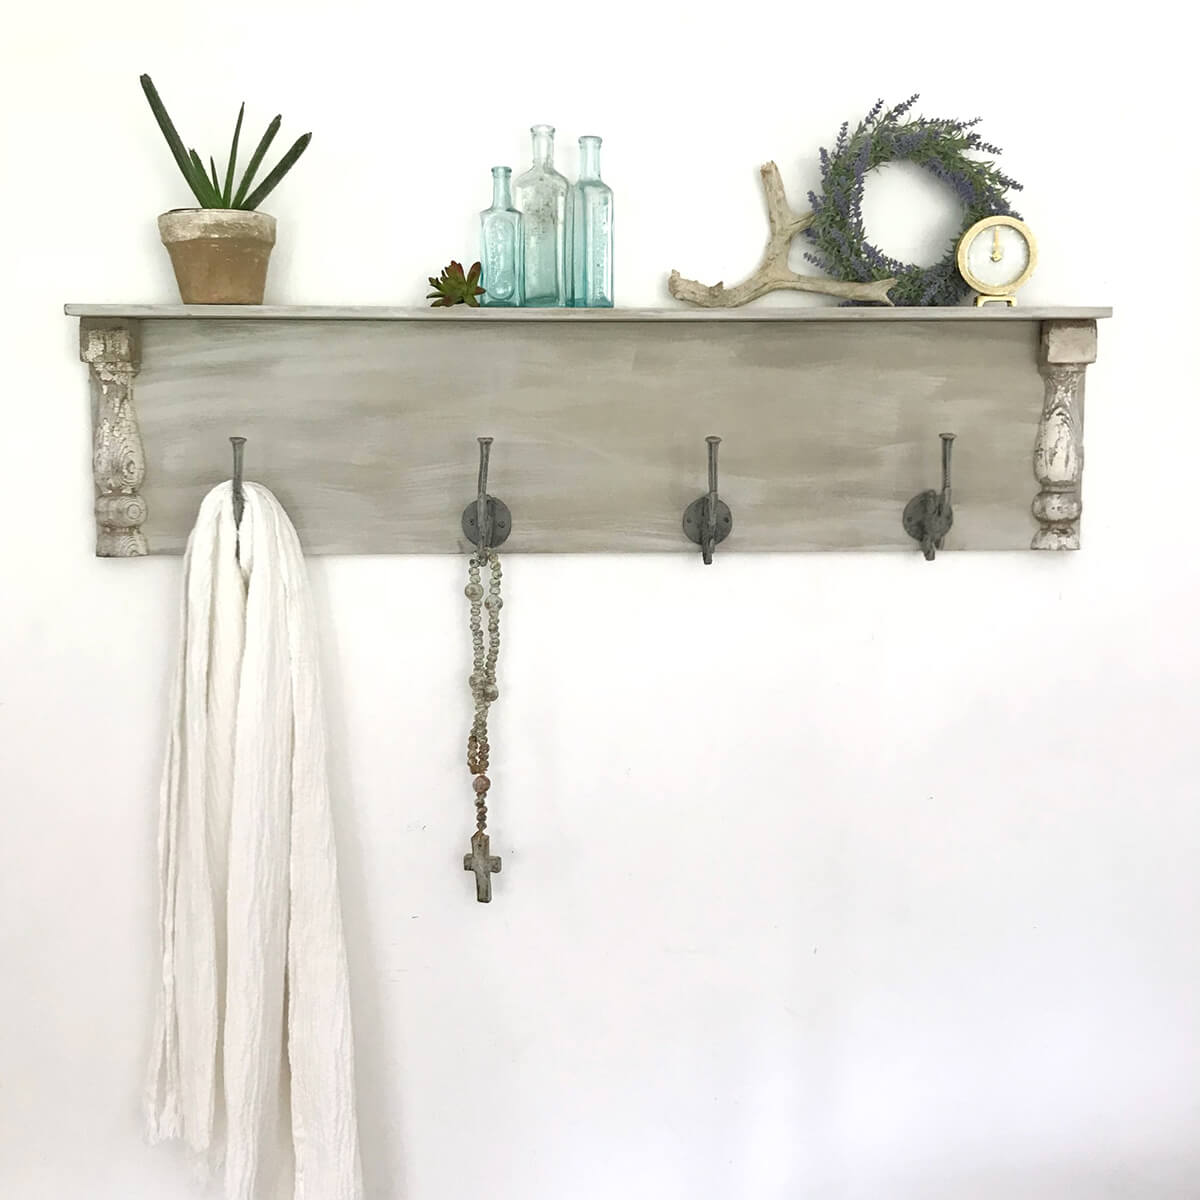 Simple Nautical Hook & Display Shelf